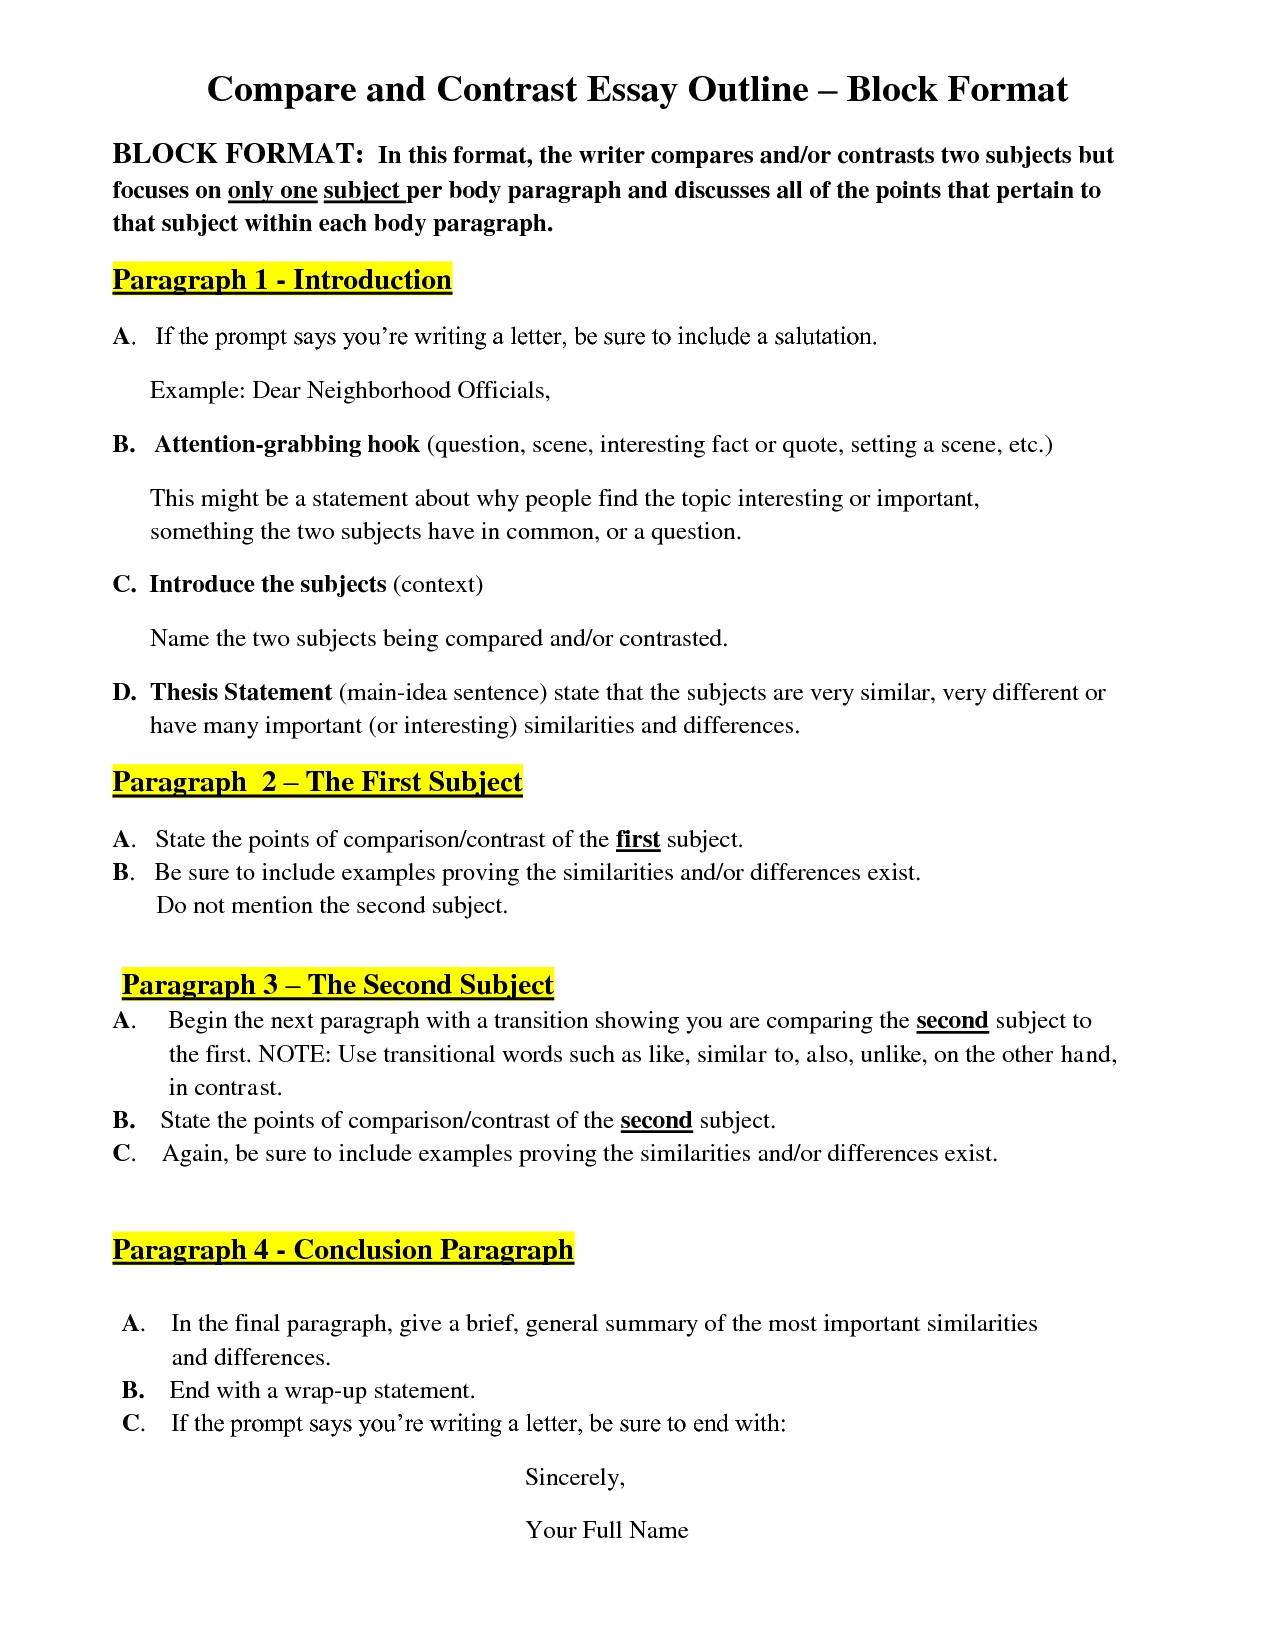 004 Essay Template Compare Contrast Outline Example Maxresdefault Creating Project Plan For Your Youtube How To An With Good Cover Letter Samples Point Wonderful By And Full